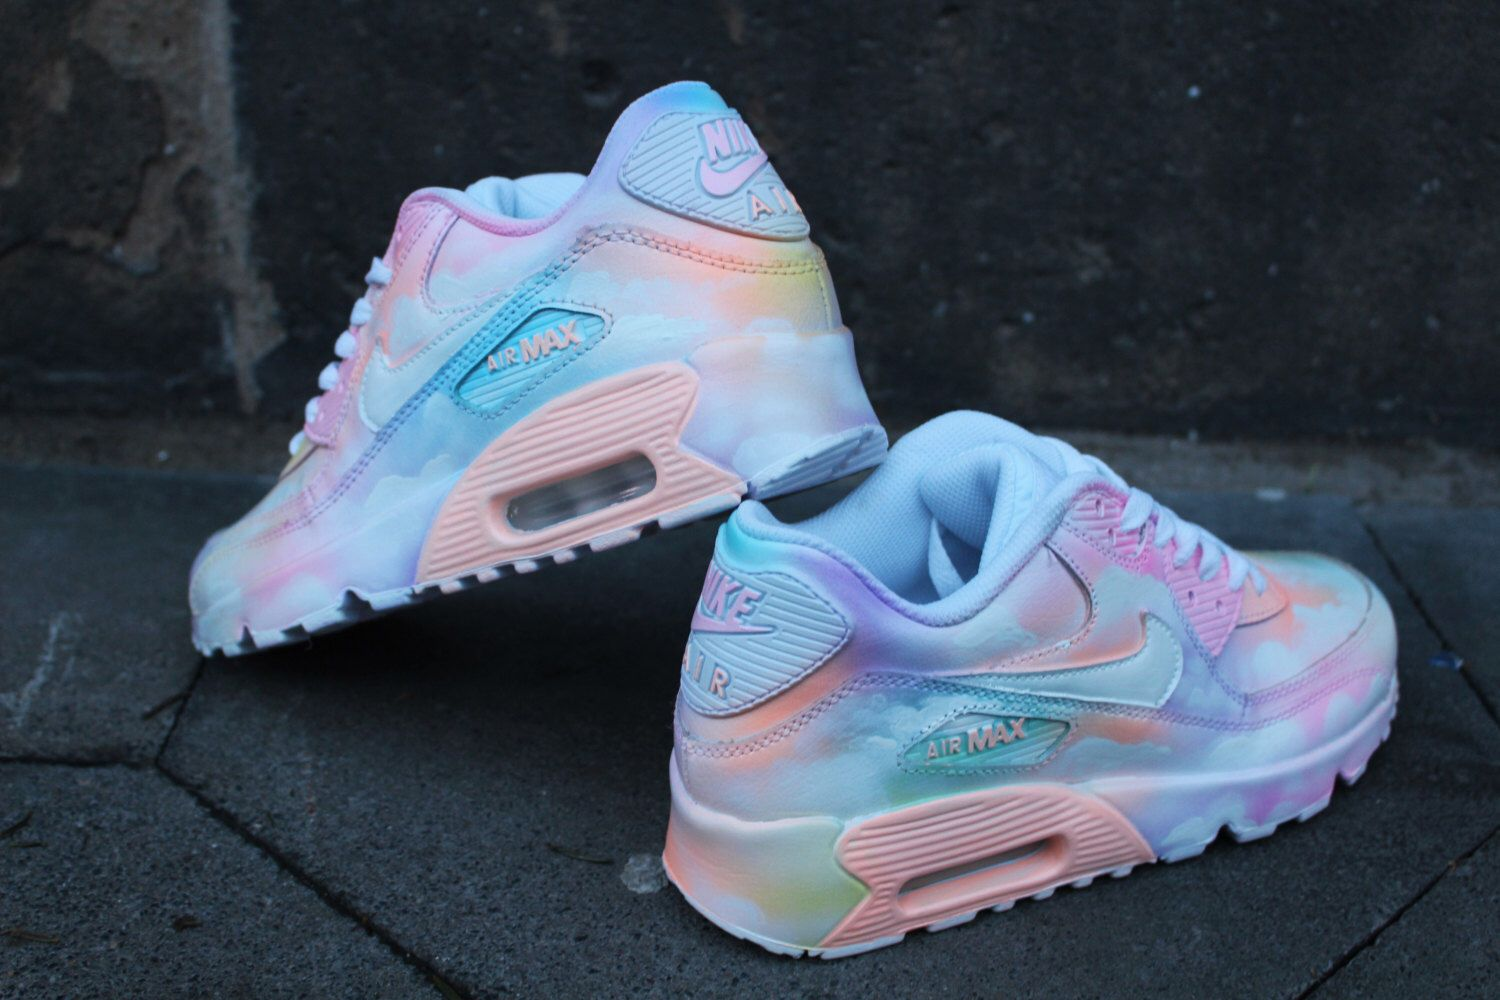 quality design c6686 1d1bf Custom painted Nike Air Max 90 Cloudy pastell Dream Art Style Sneaker   UNIKAT